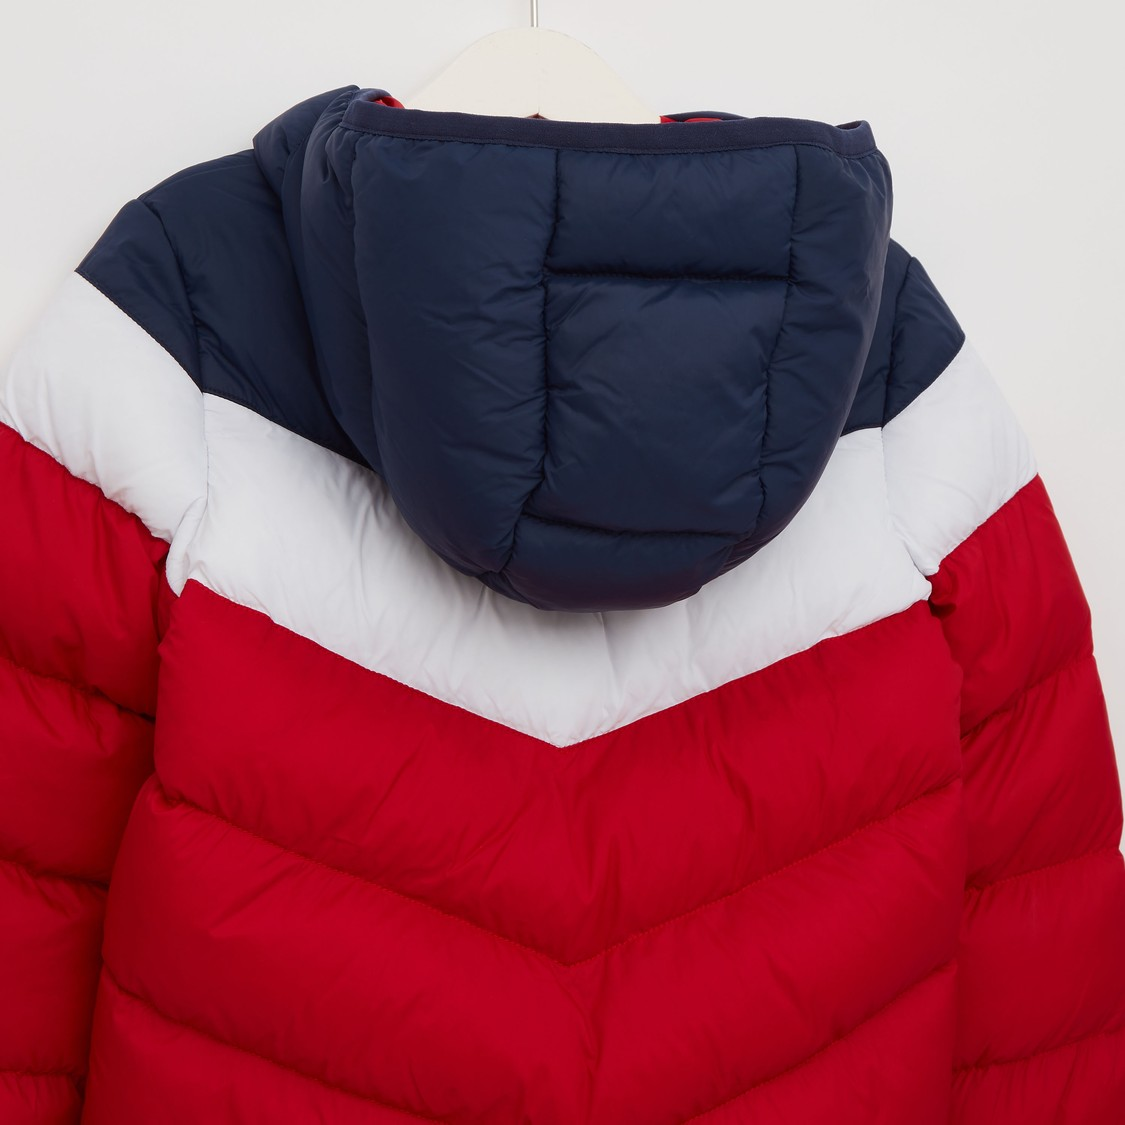 Panelled Hooded Jacket with Long Sleeves and Zip Closure